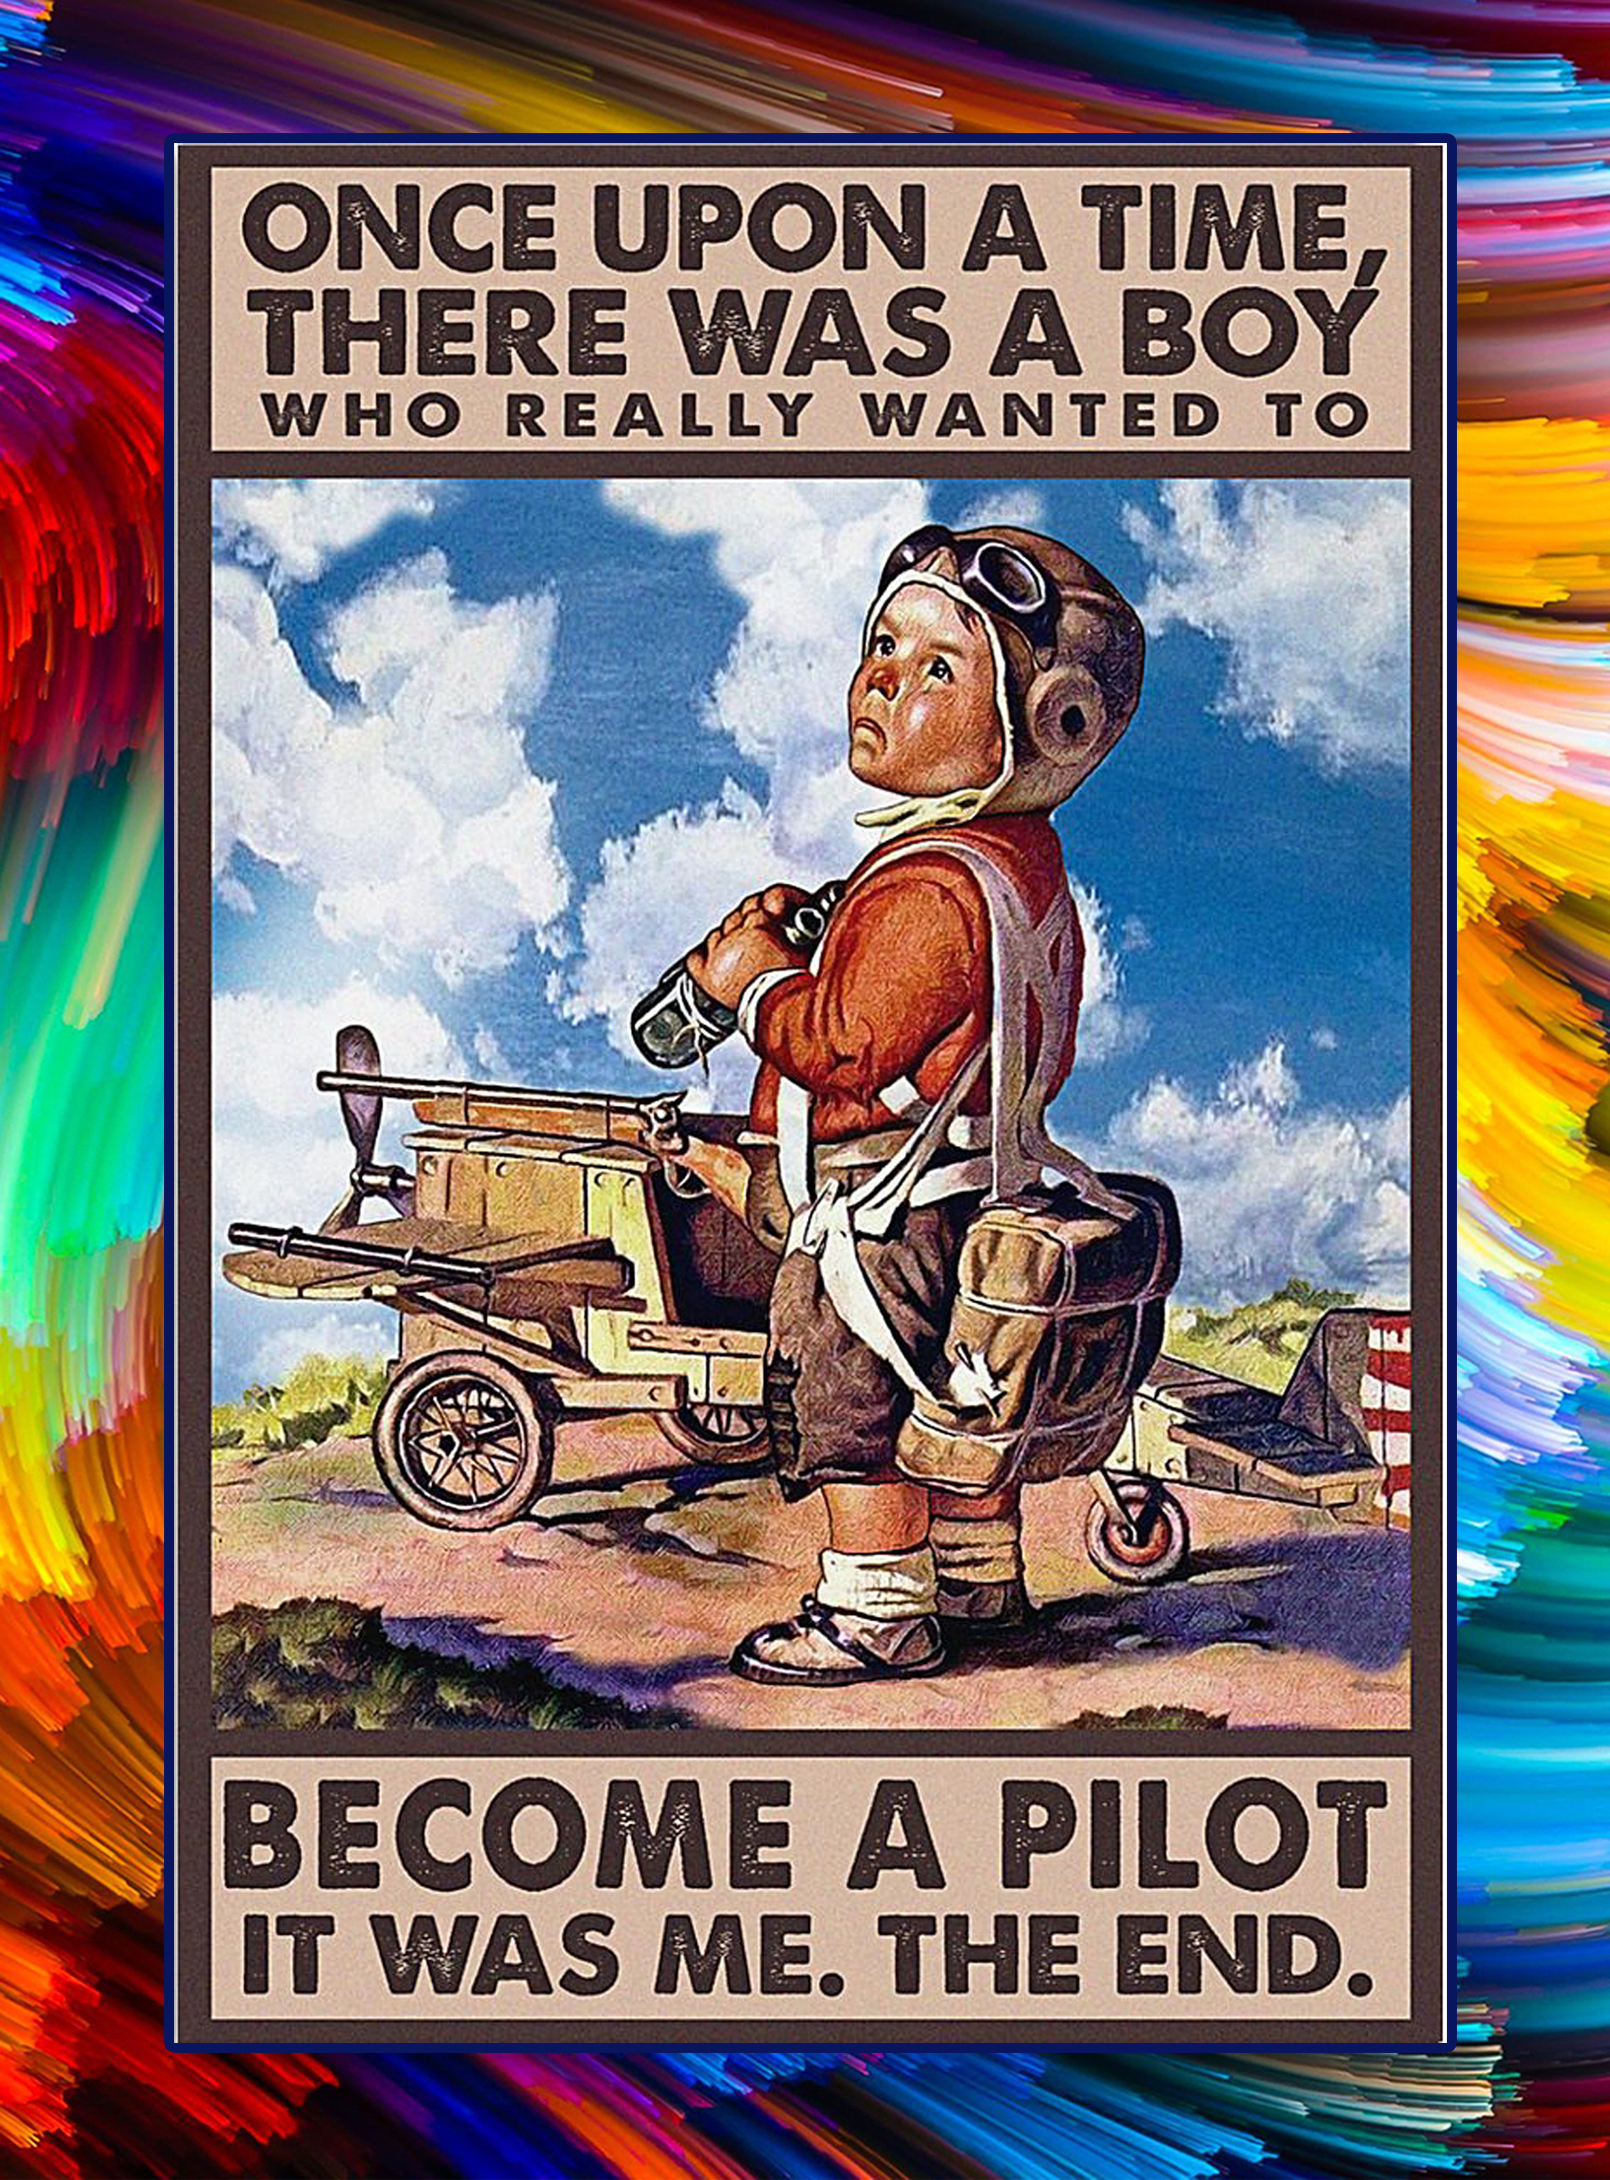 There was a boy who really wanted to become a pilot poster - A3